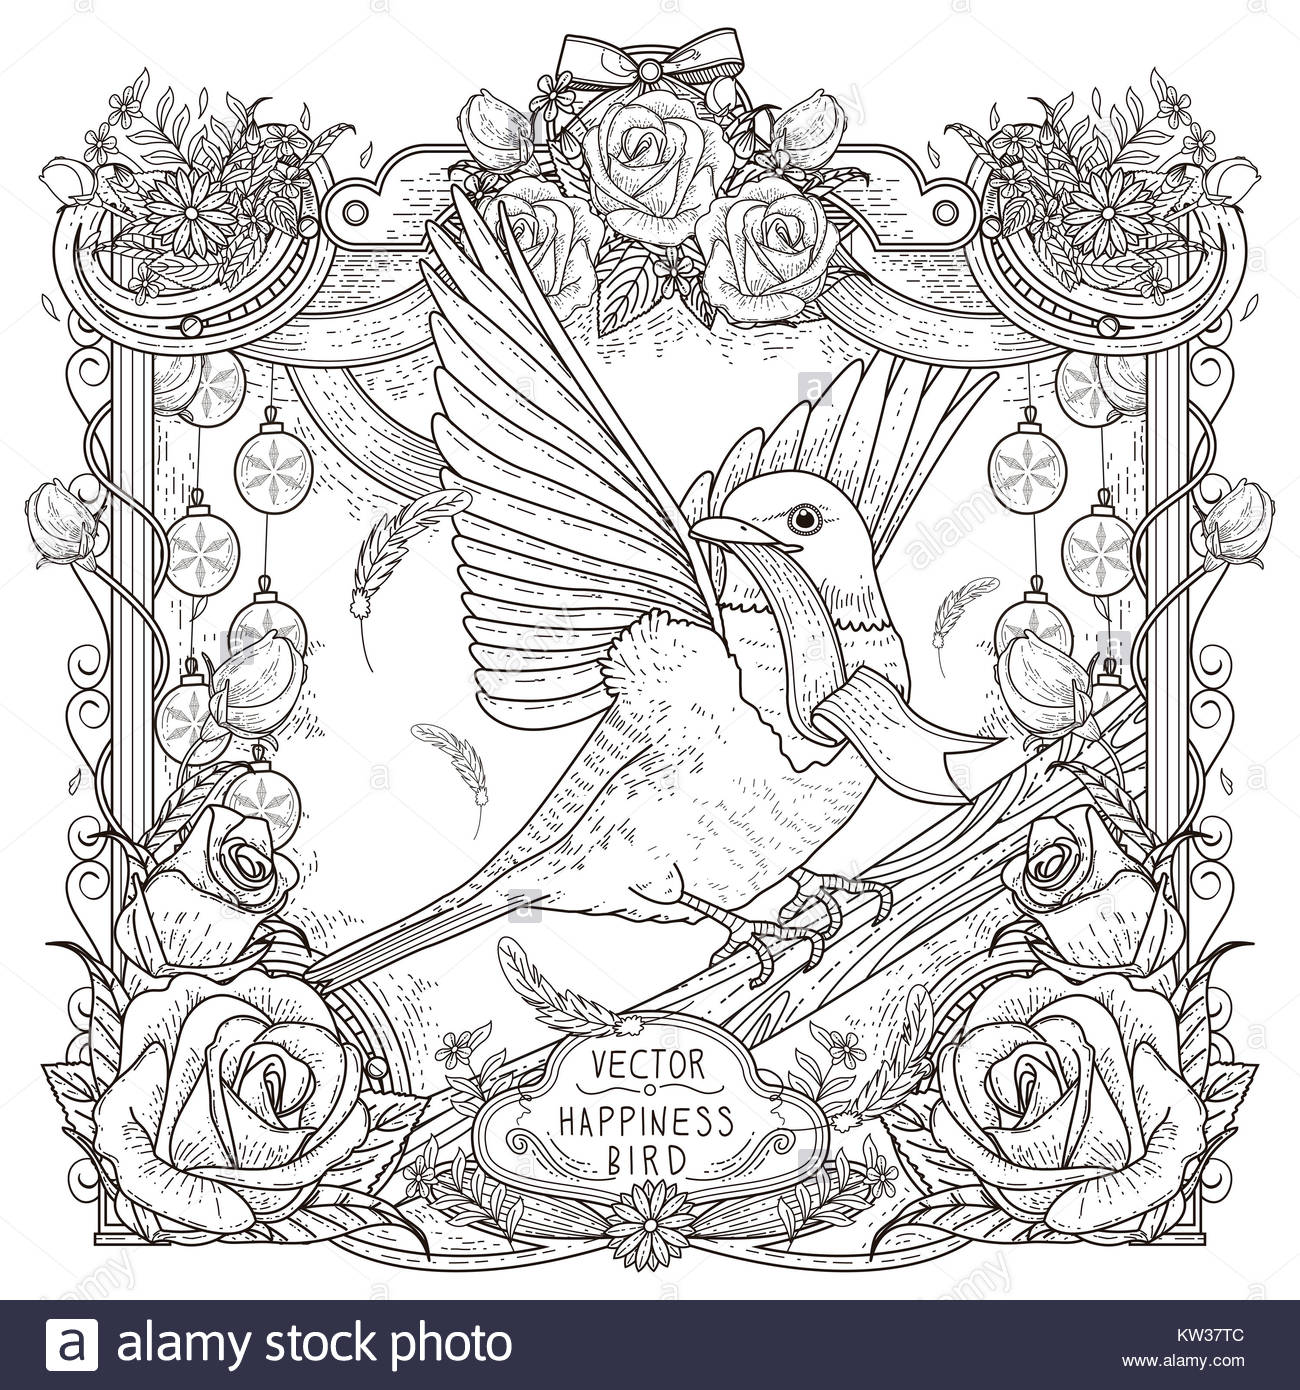 Cheerful Bird Coloring Page Design In Exquisite Style